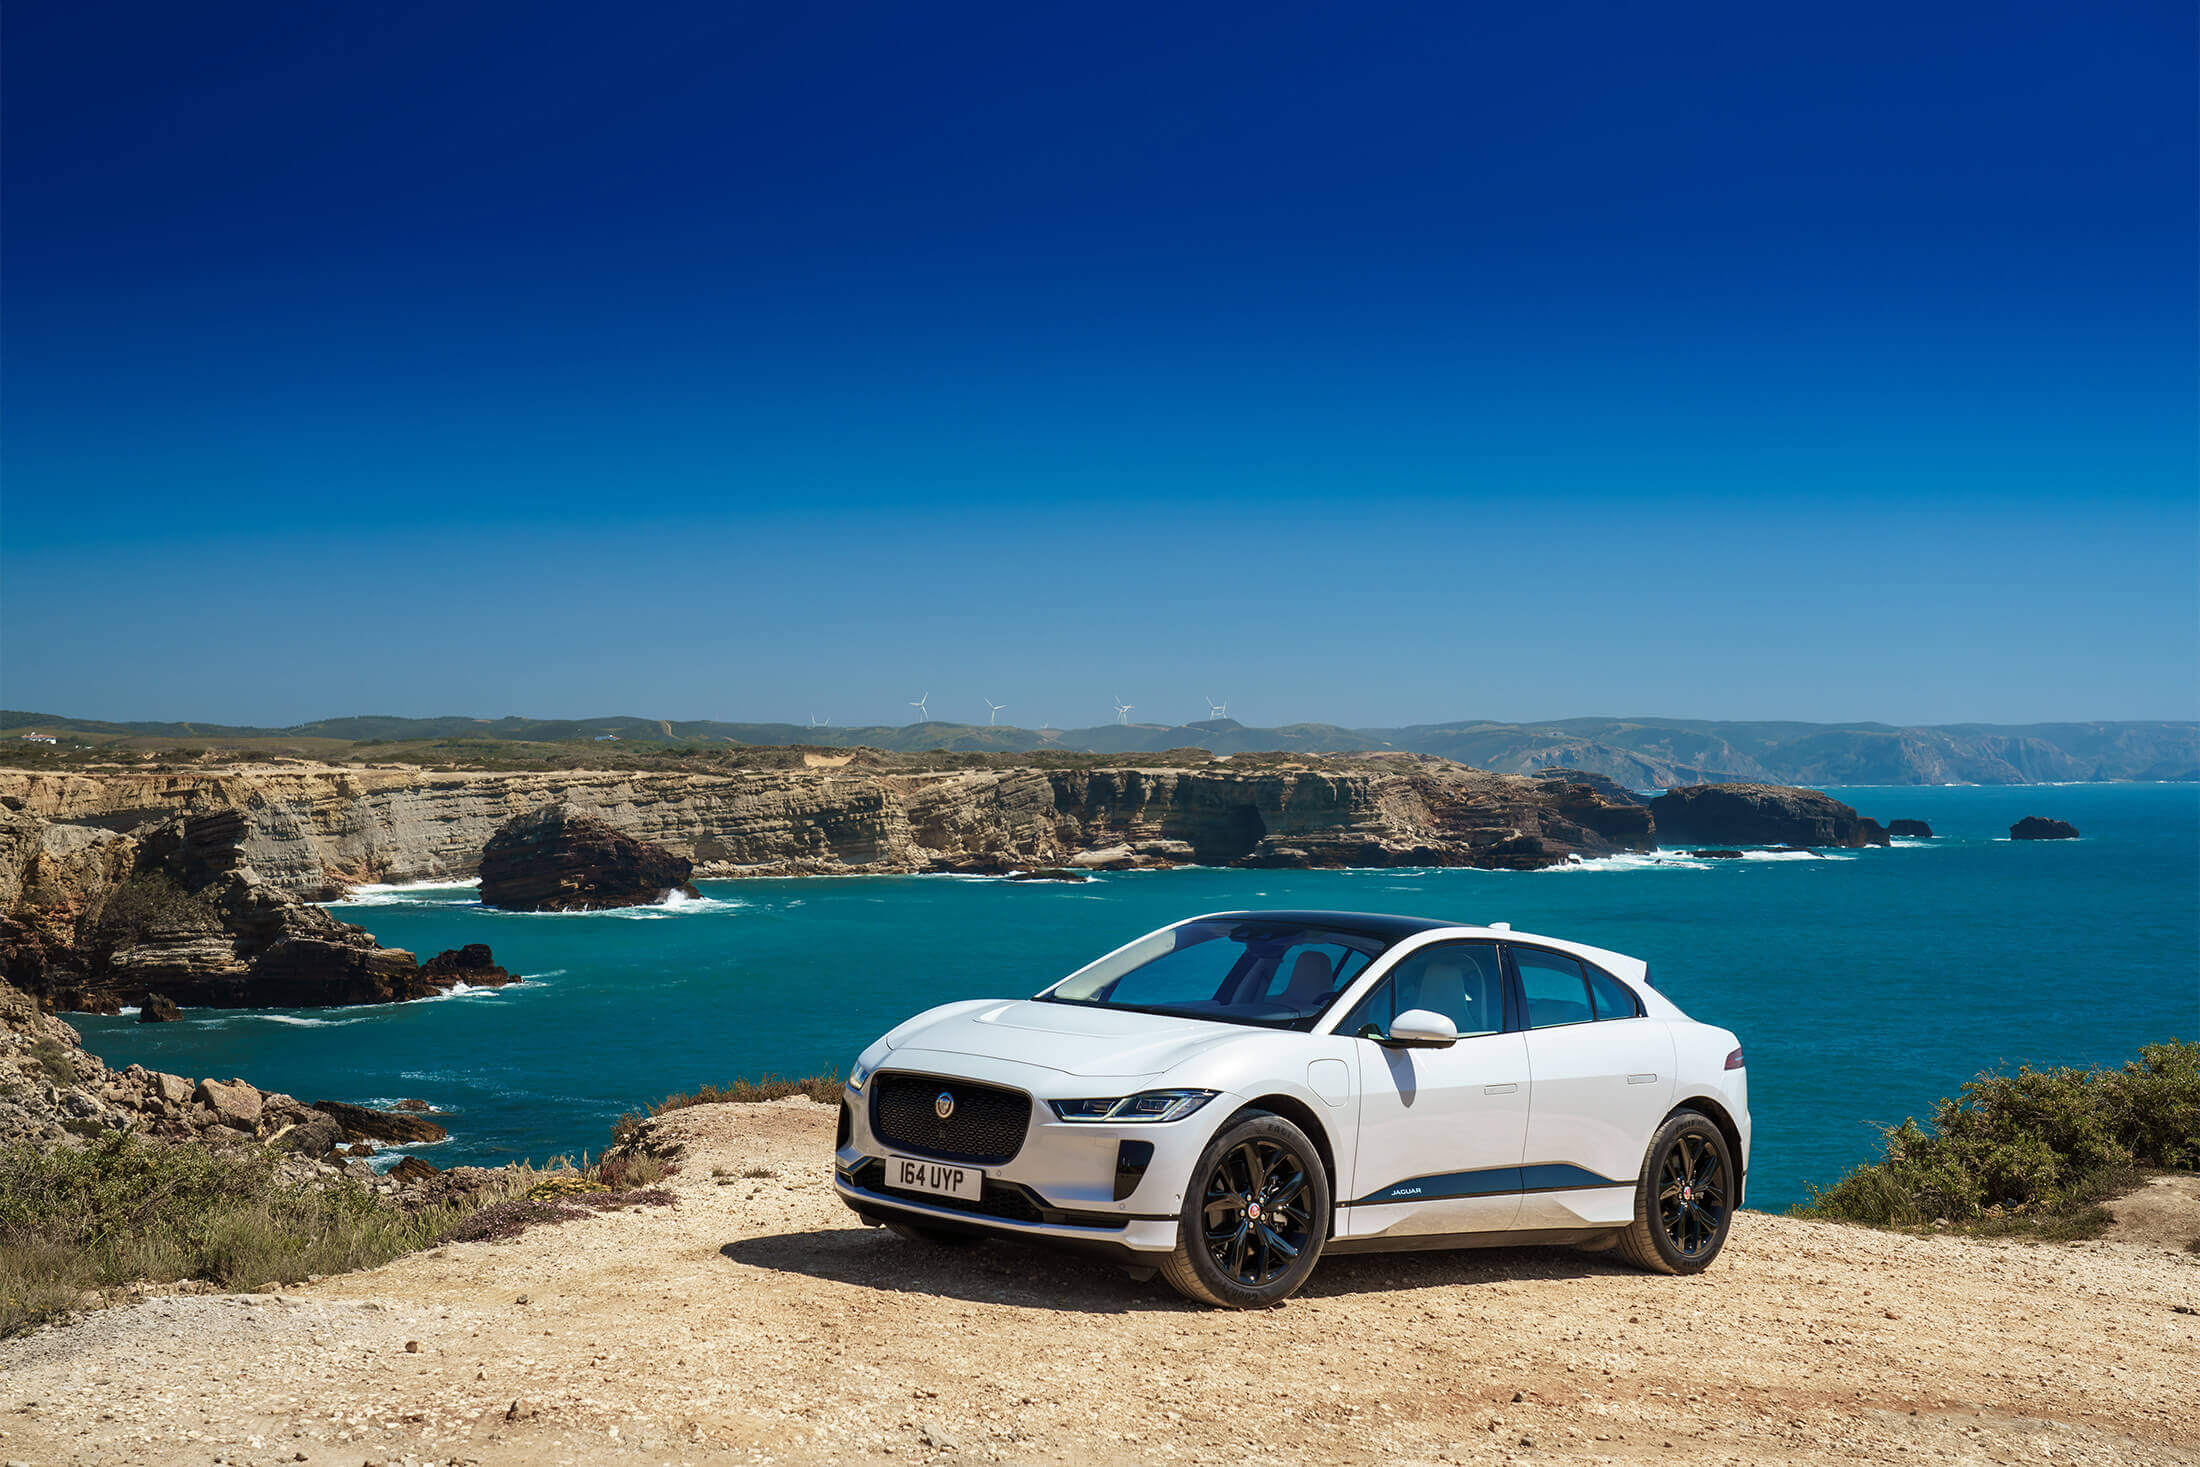 JAGUAR I-PACE - NOW AVAILABLE WITH THE OUT